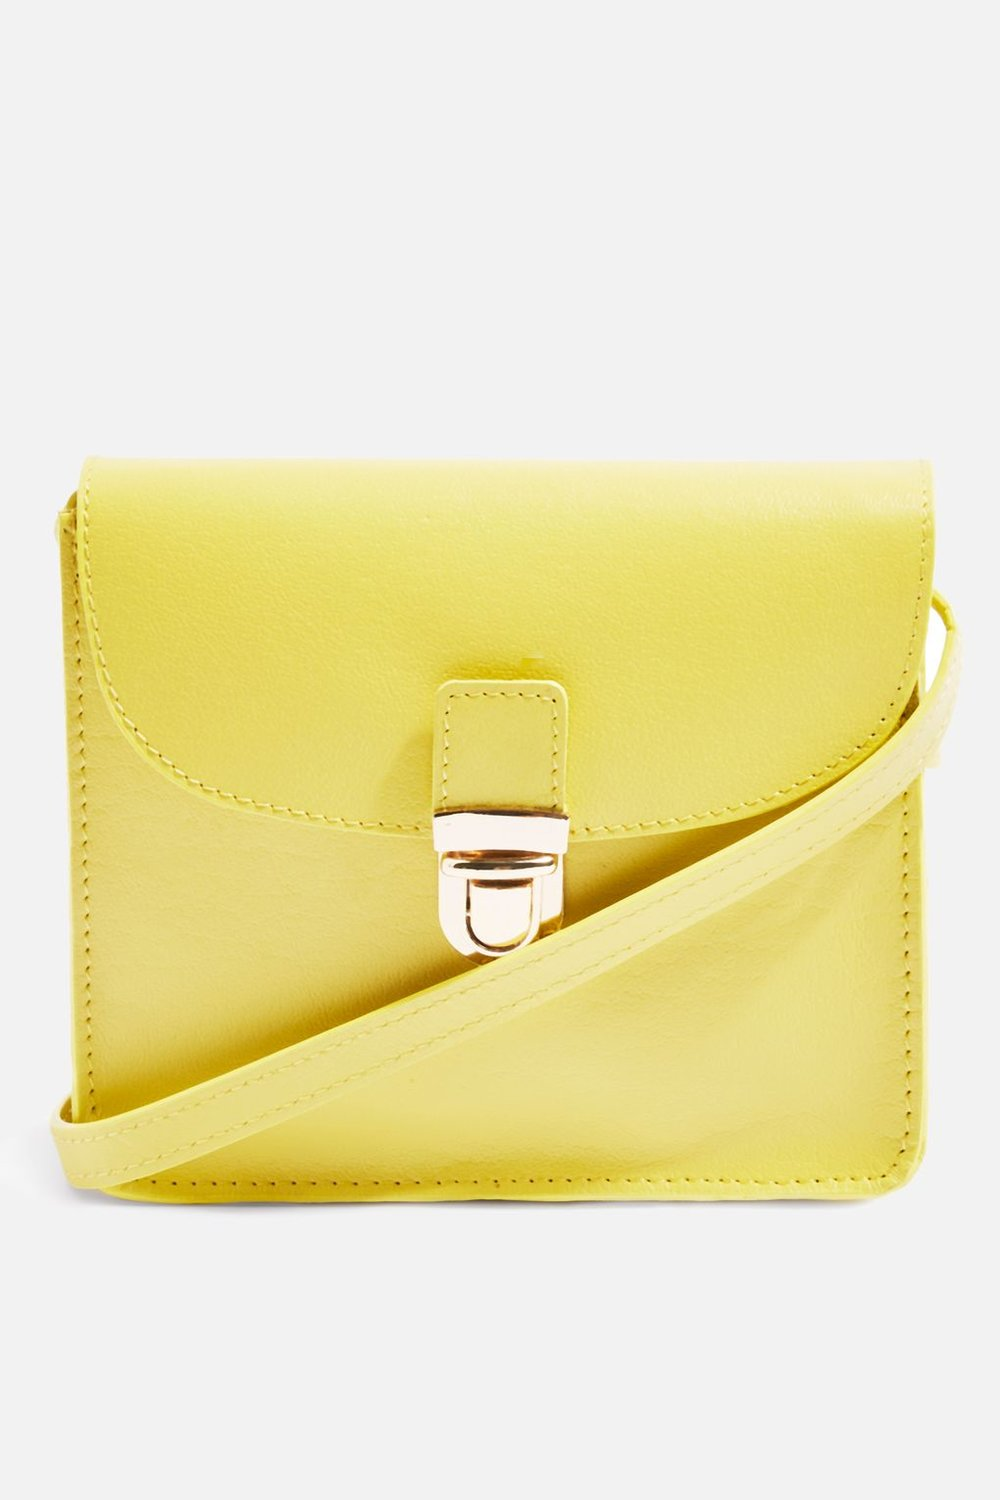 6. Bag, £24 at Topshop